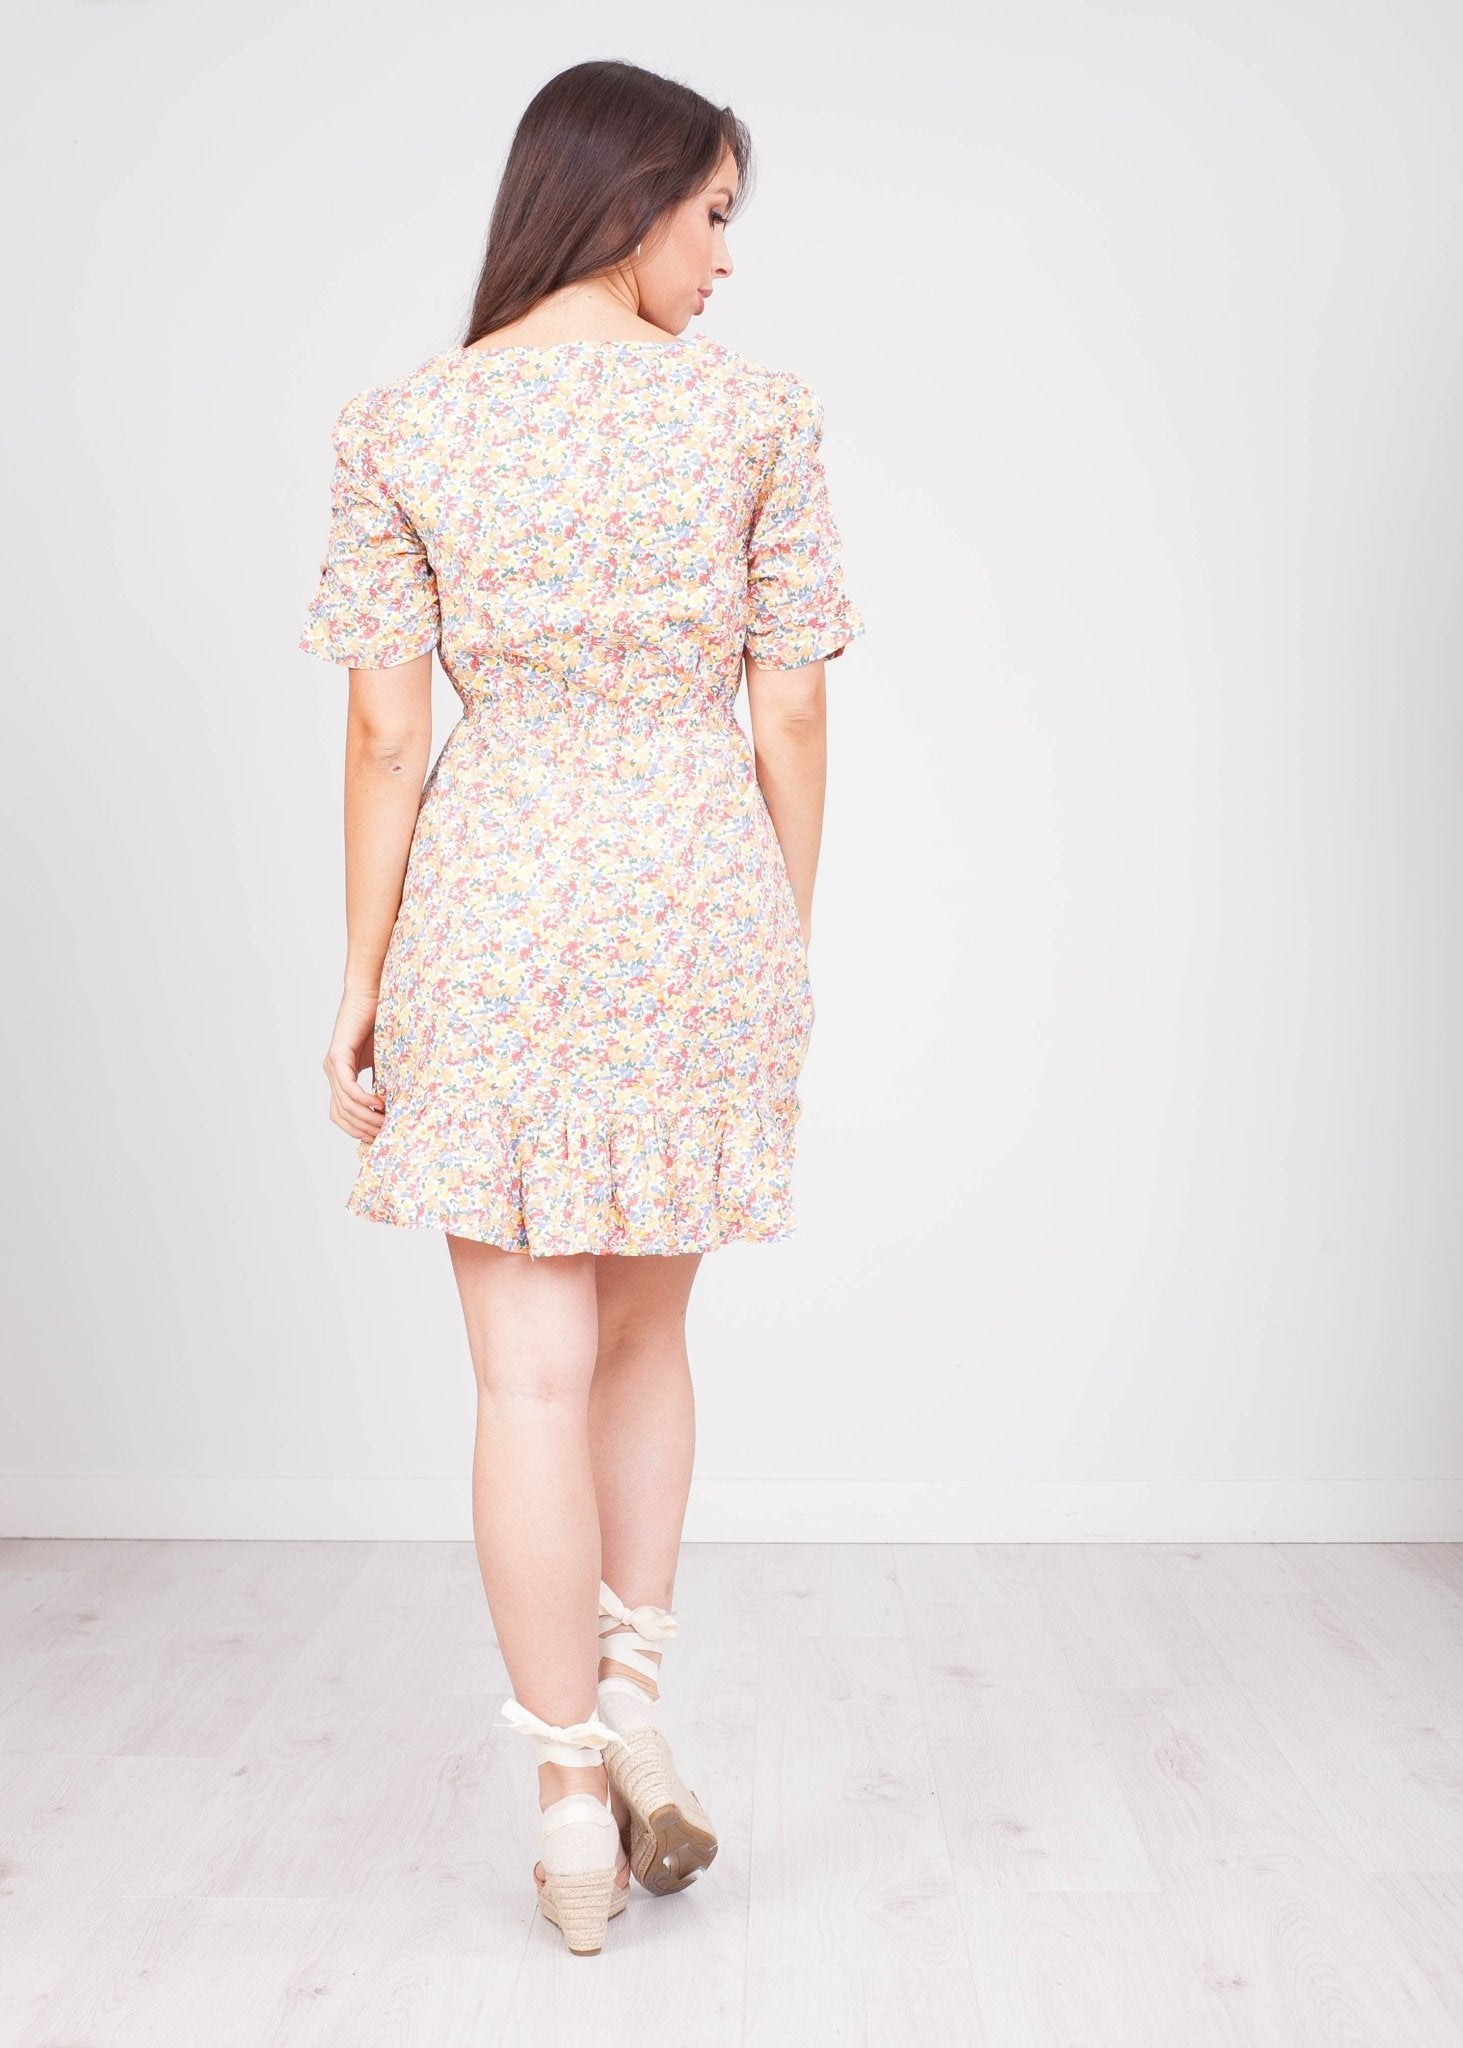 Fifi Floral Multi Colour Mini Dress - The Walk in Wardrobe